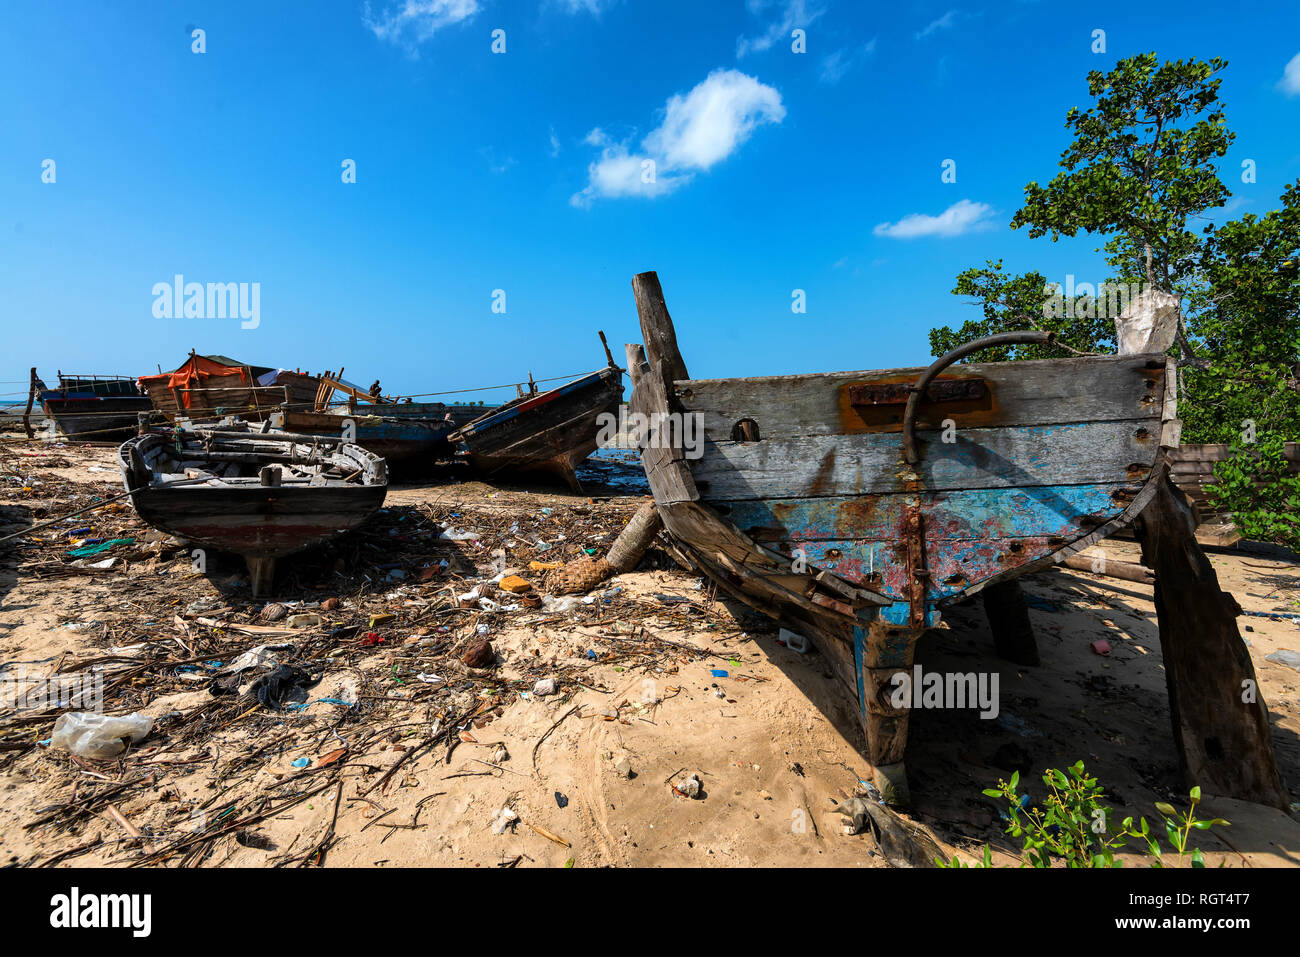 Zanzibar beach with old abandoned boats and trash - Stock Image